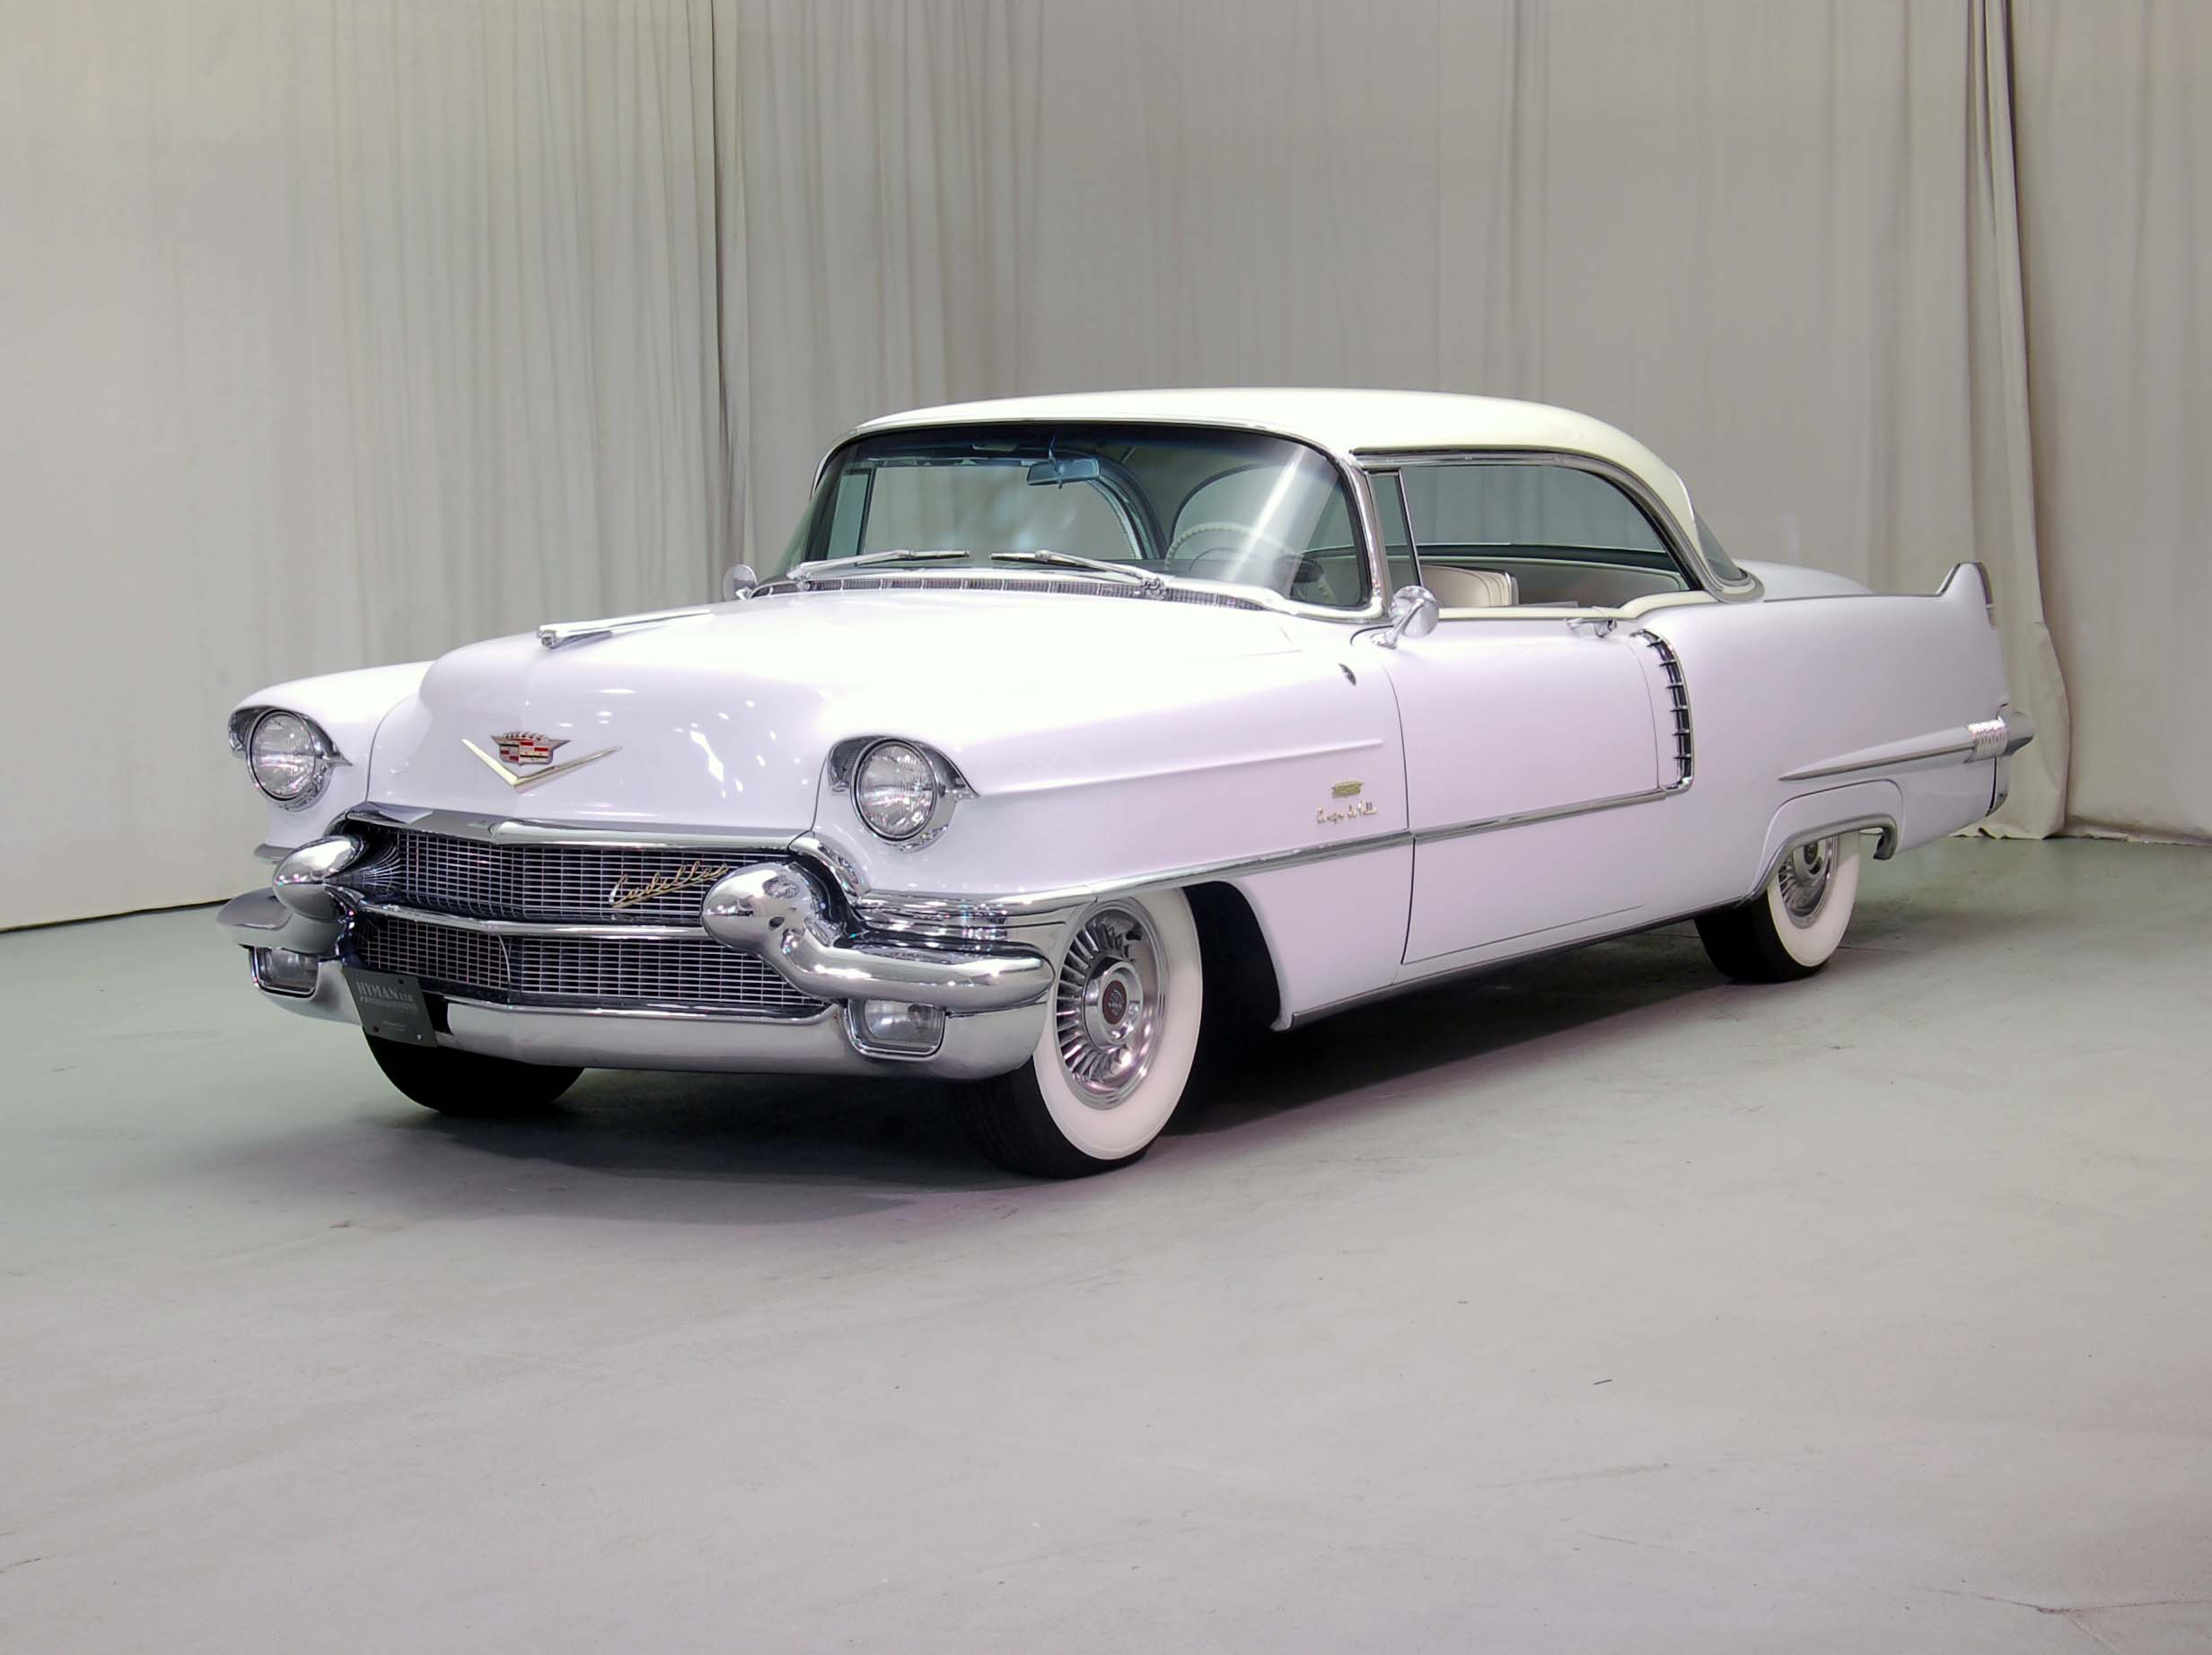 File:1956 Cadillac Coupe De Ville white.jpg - Wikimedia Commons